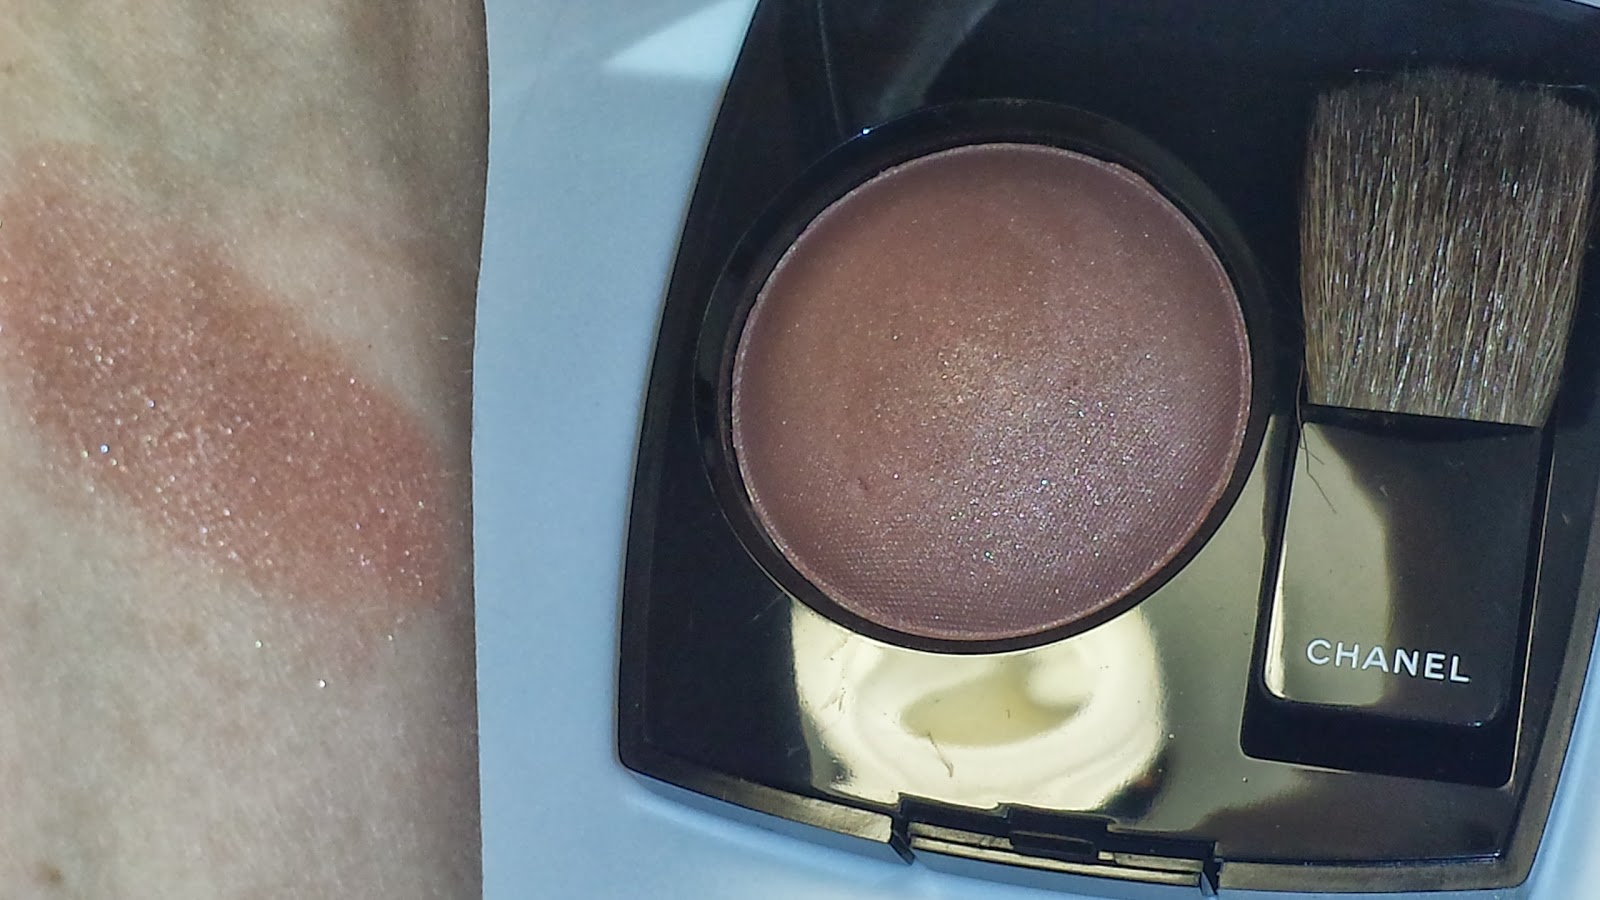 Review Accent Blush Chanel Powder